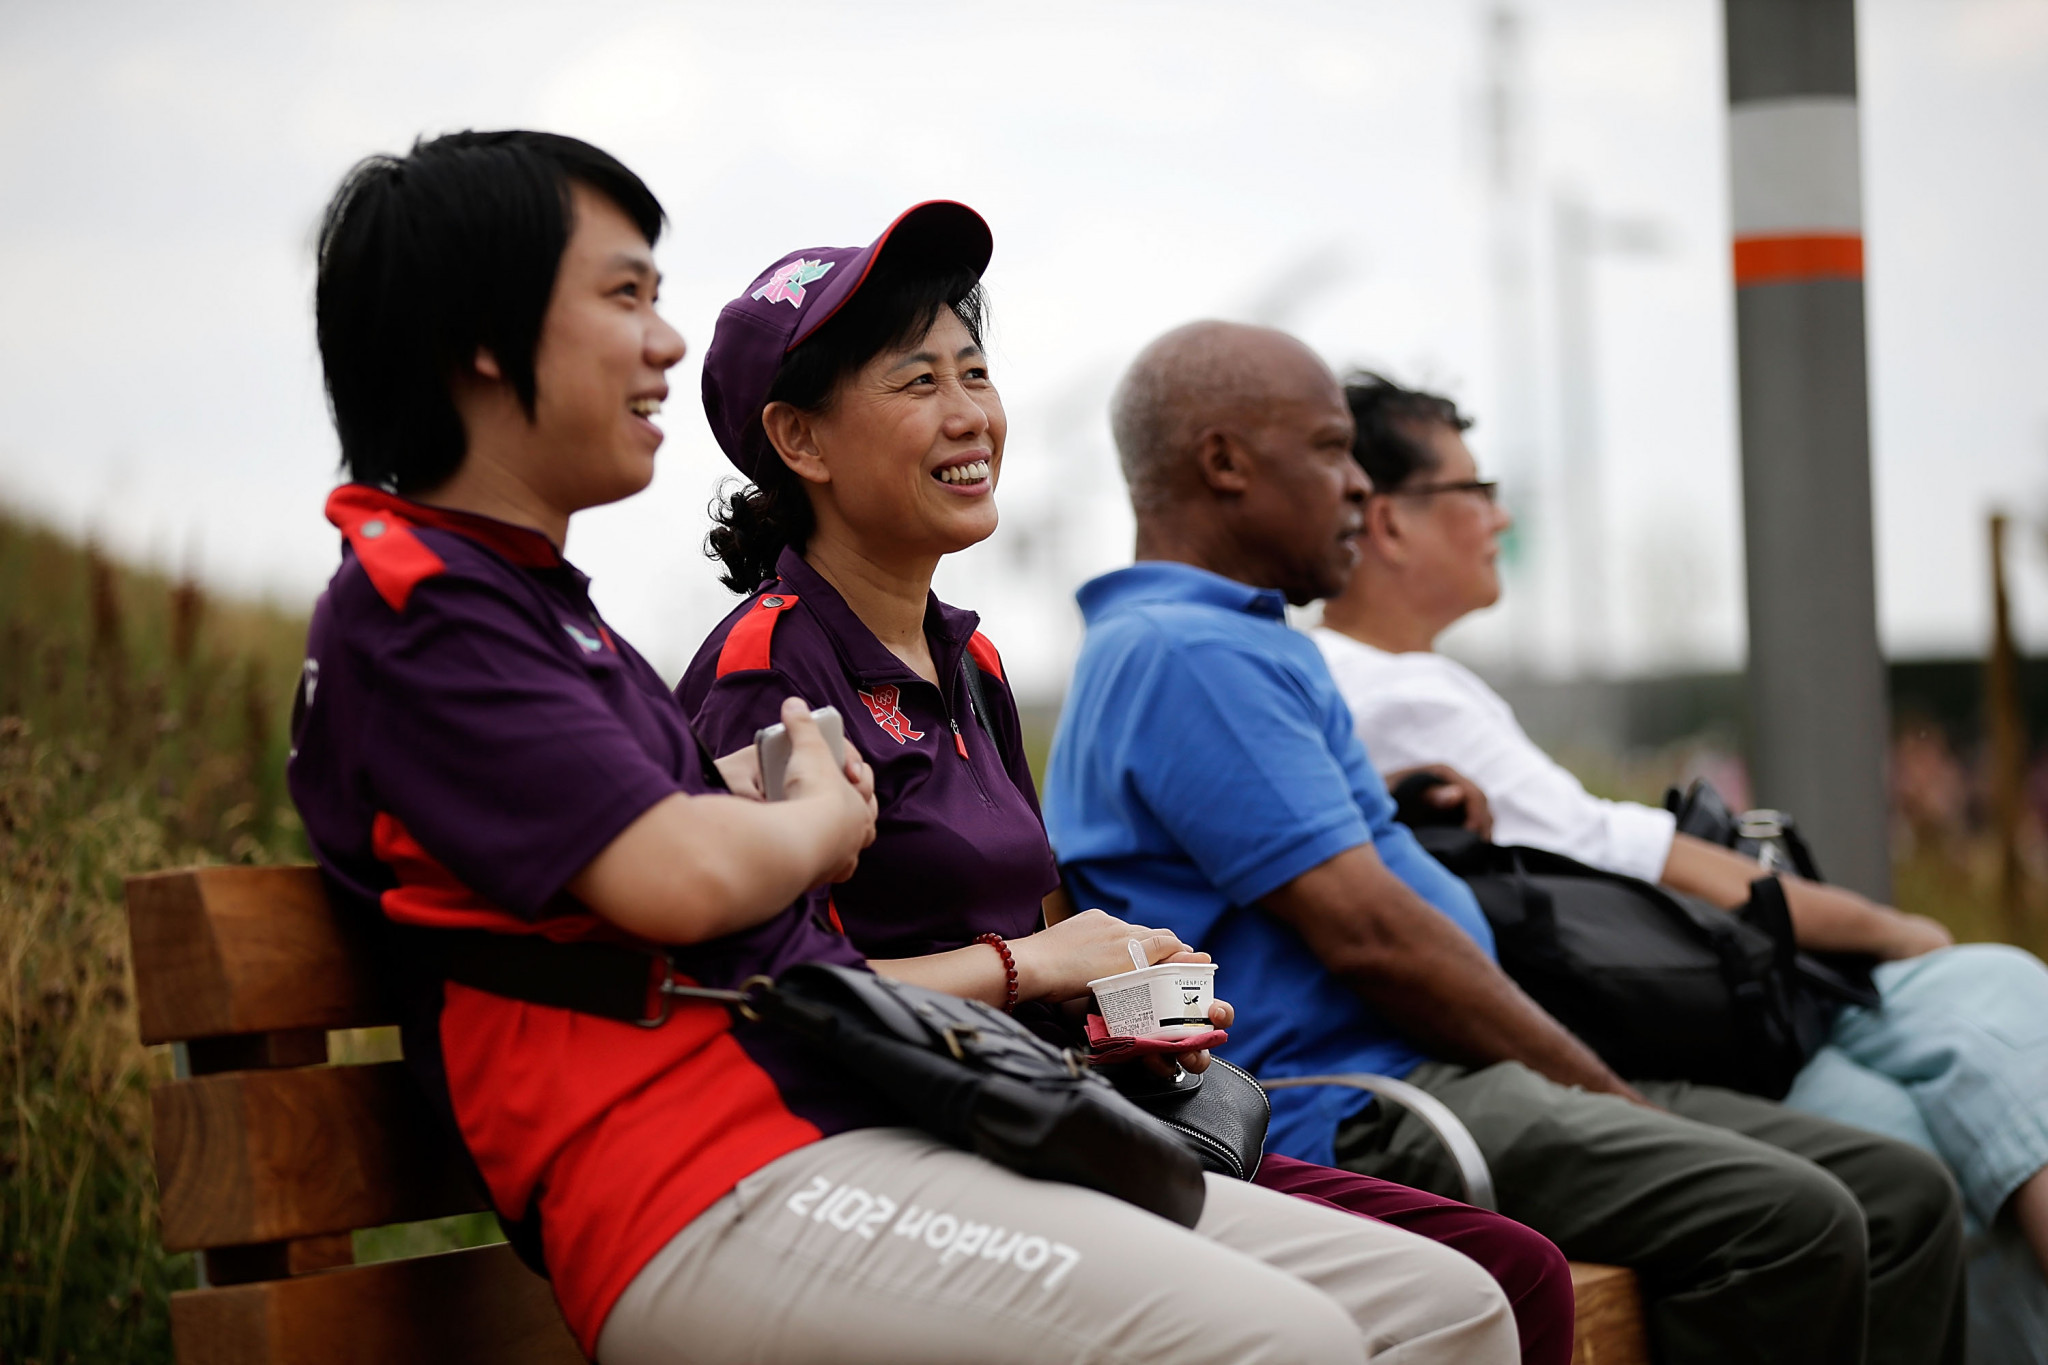 Tokyo 2020 have called the chance to become a volunteer a